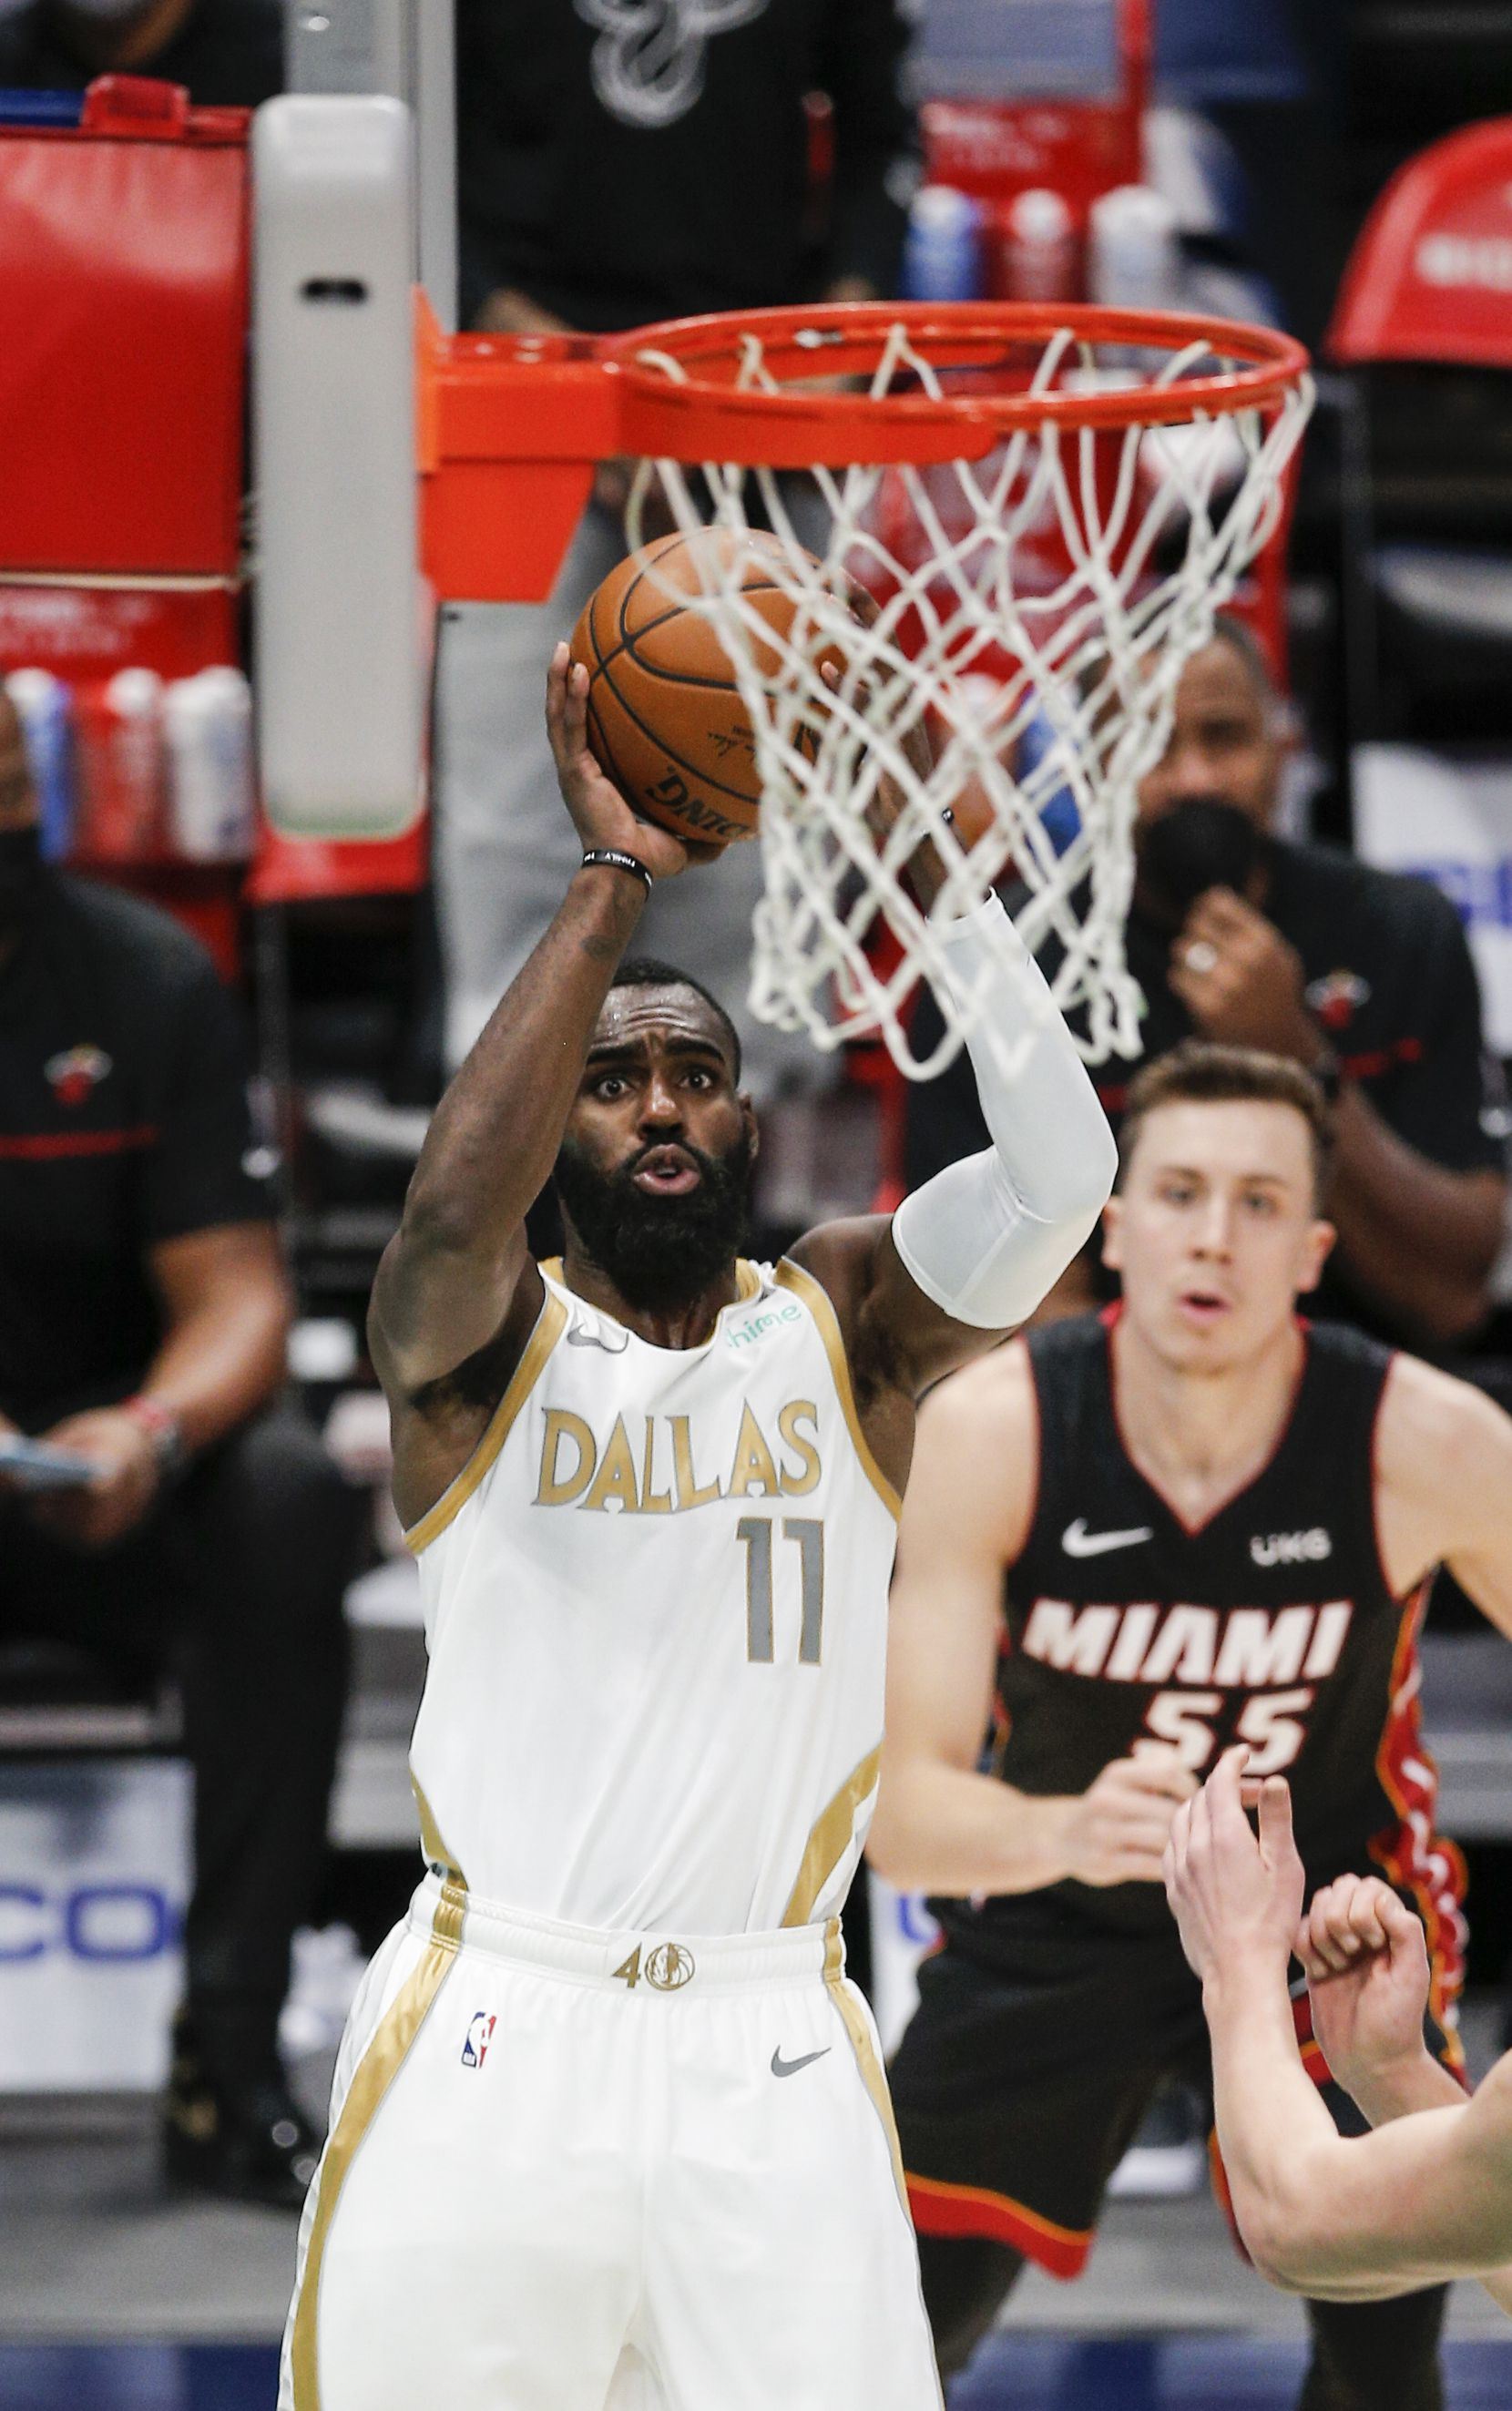 Dallas Mavericks guard Tim Hardaway Jr. (11) attempts a shot during the second half of an NBA basketball game against the Miami Heat, Friday, January 1, 2021.  Dallas won 93-83. (Brandon Wade/Special Contributor)